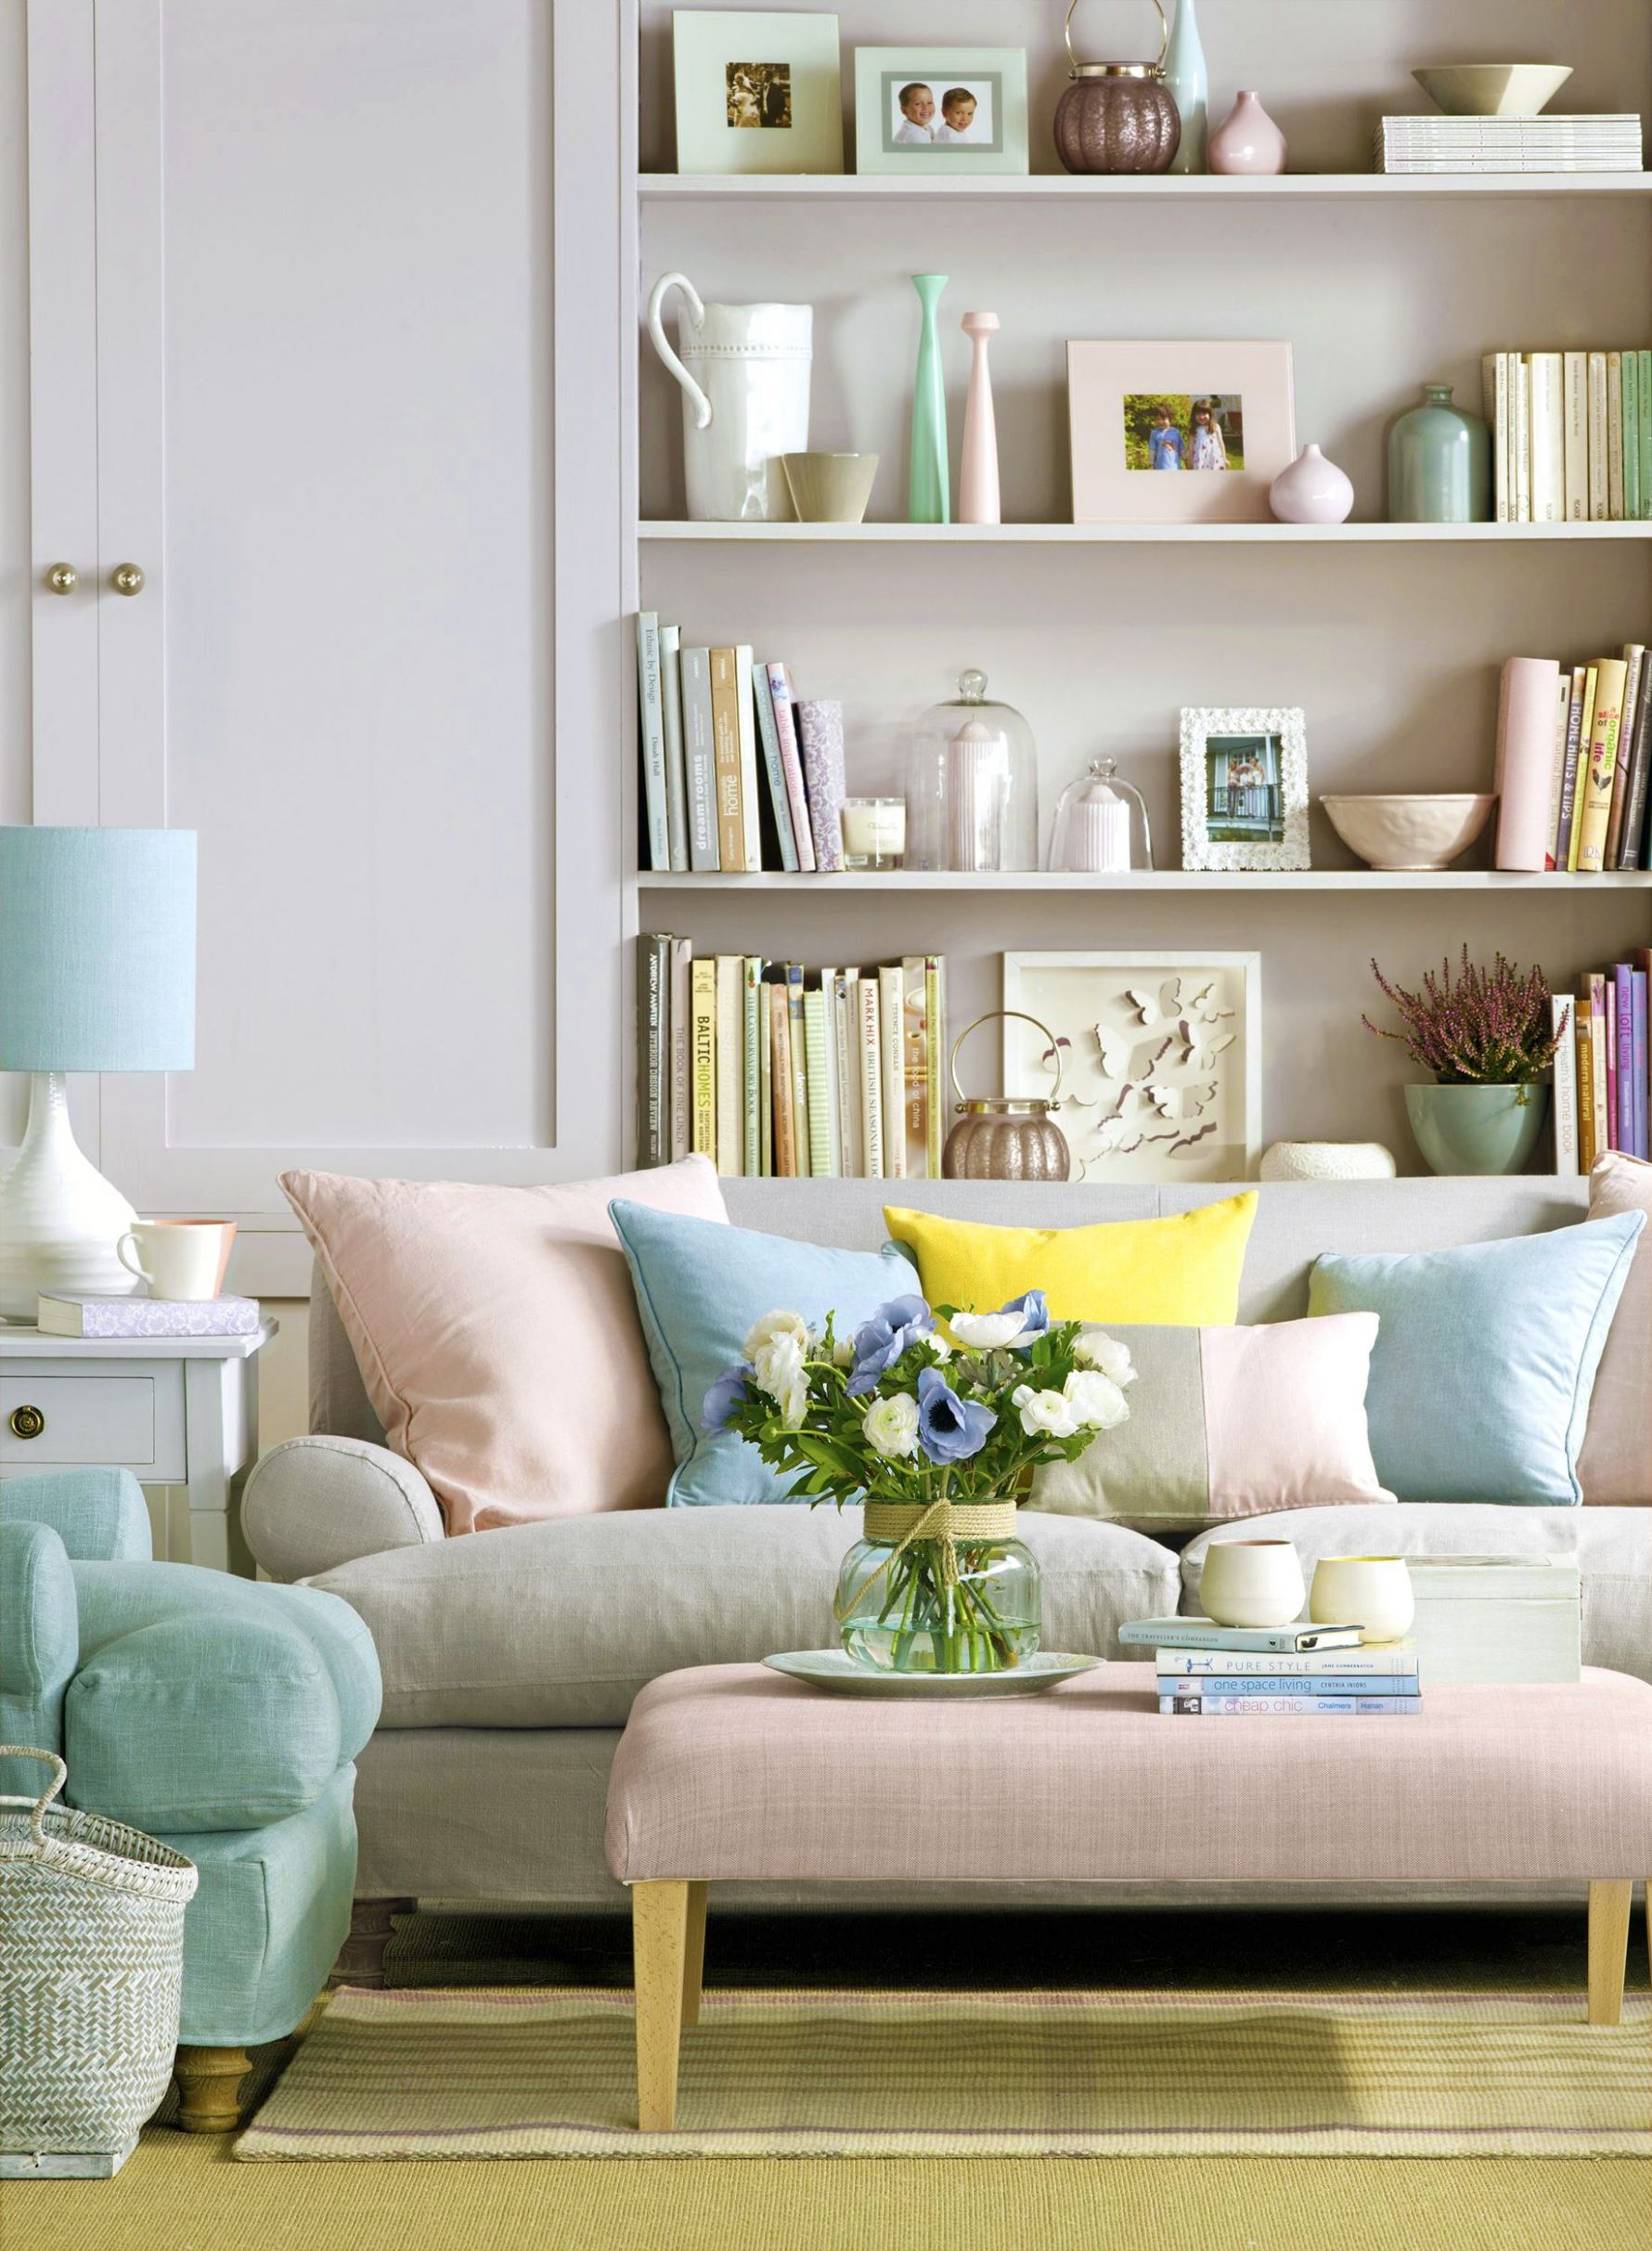 11 Spring Decor Ideas to Freshen Up Your Home - Best Spring ...